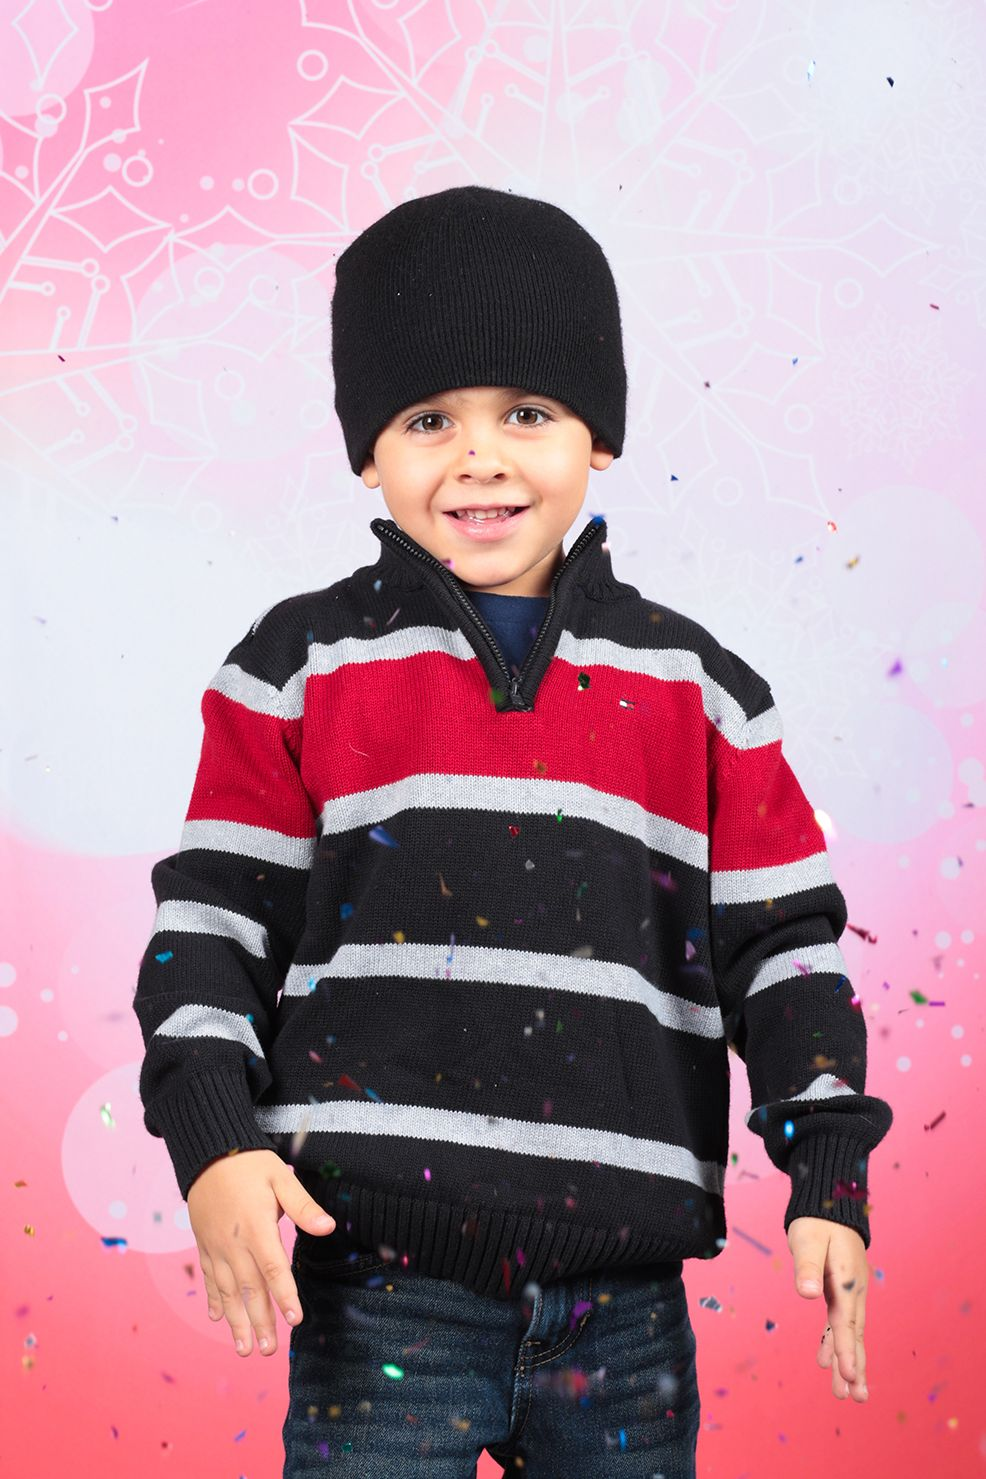 Red Snowflake Bokeh Printed Backdrop from Backdrop Express - a fun and beautiful winter holiday background!